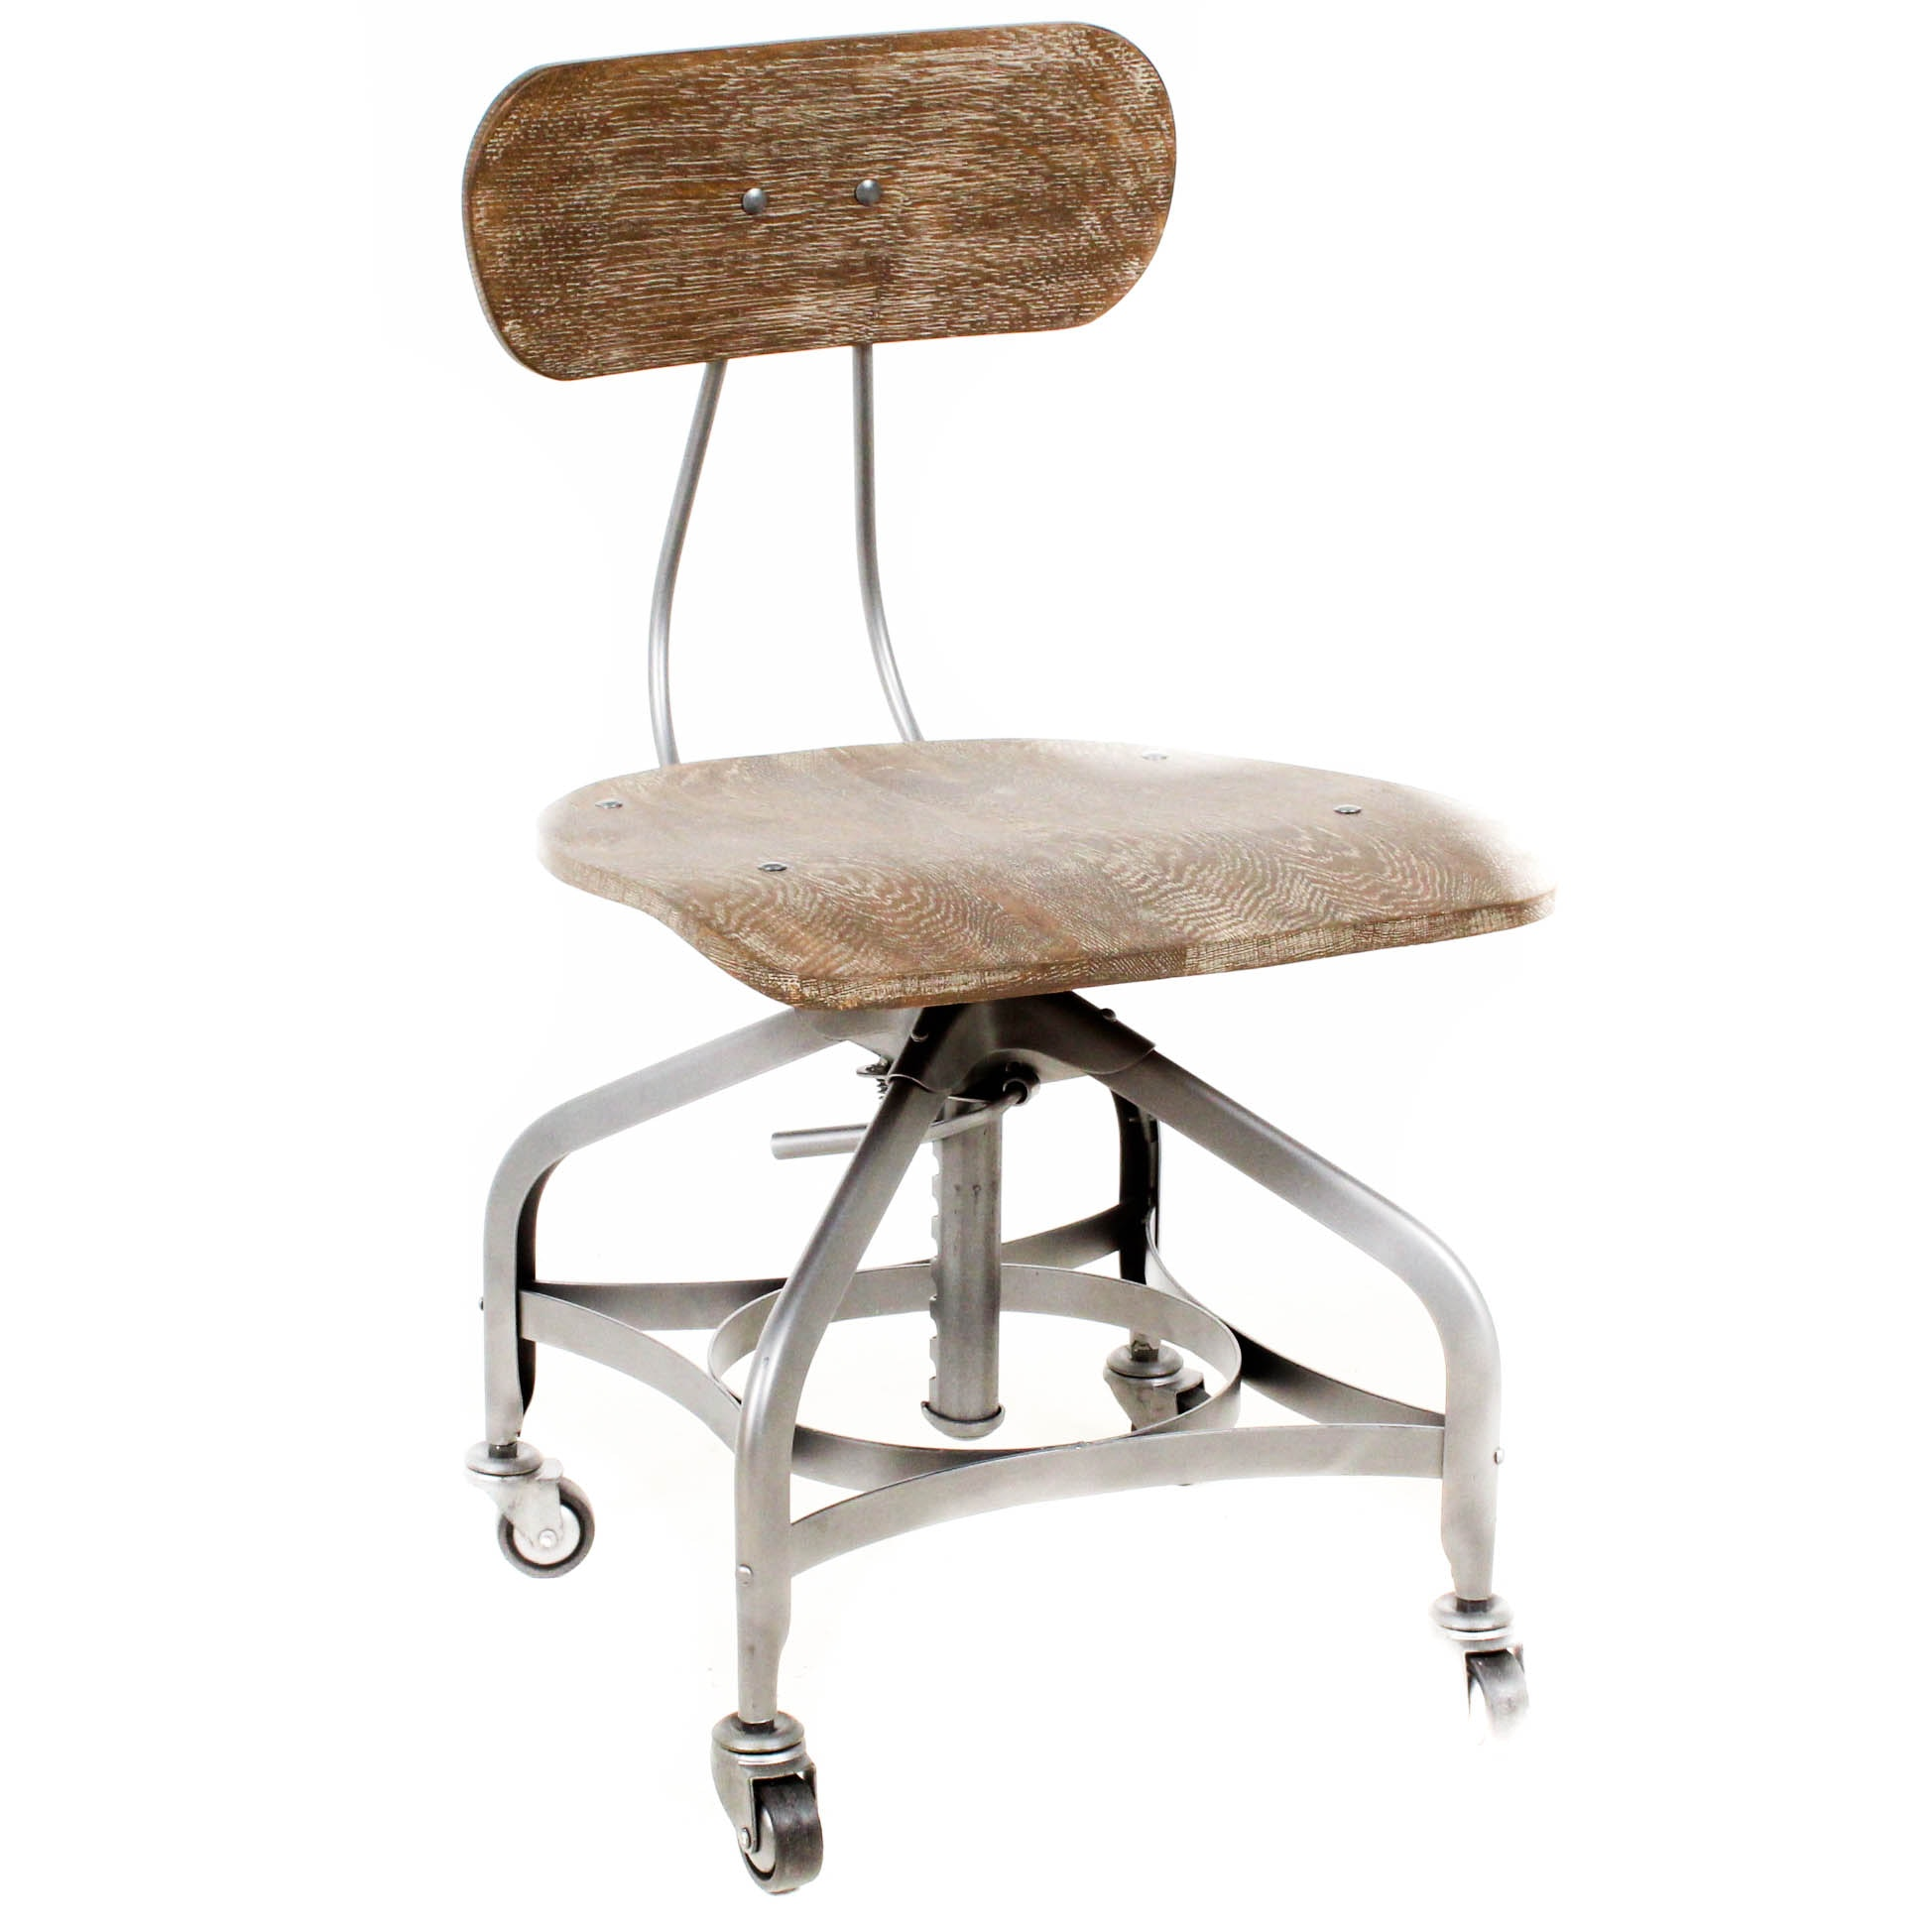 "Restoration Hardware ""1940's Vintage Toledo"" Desk Chair"